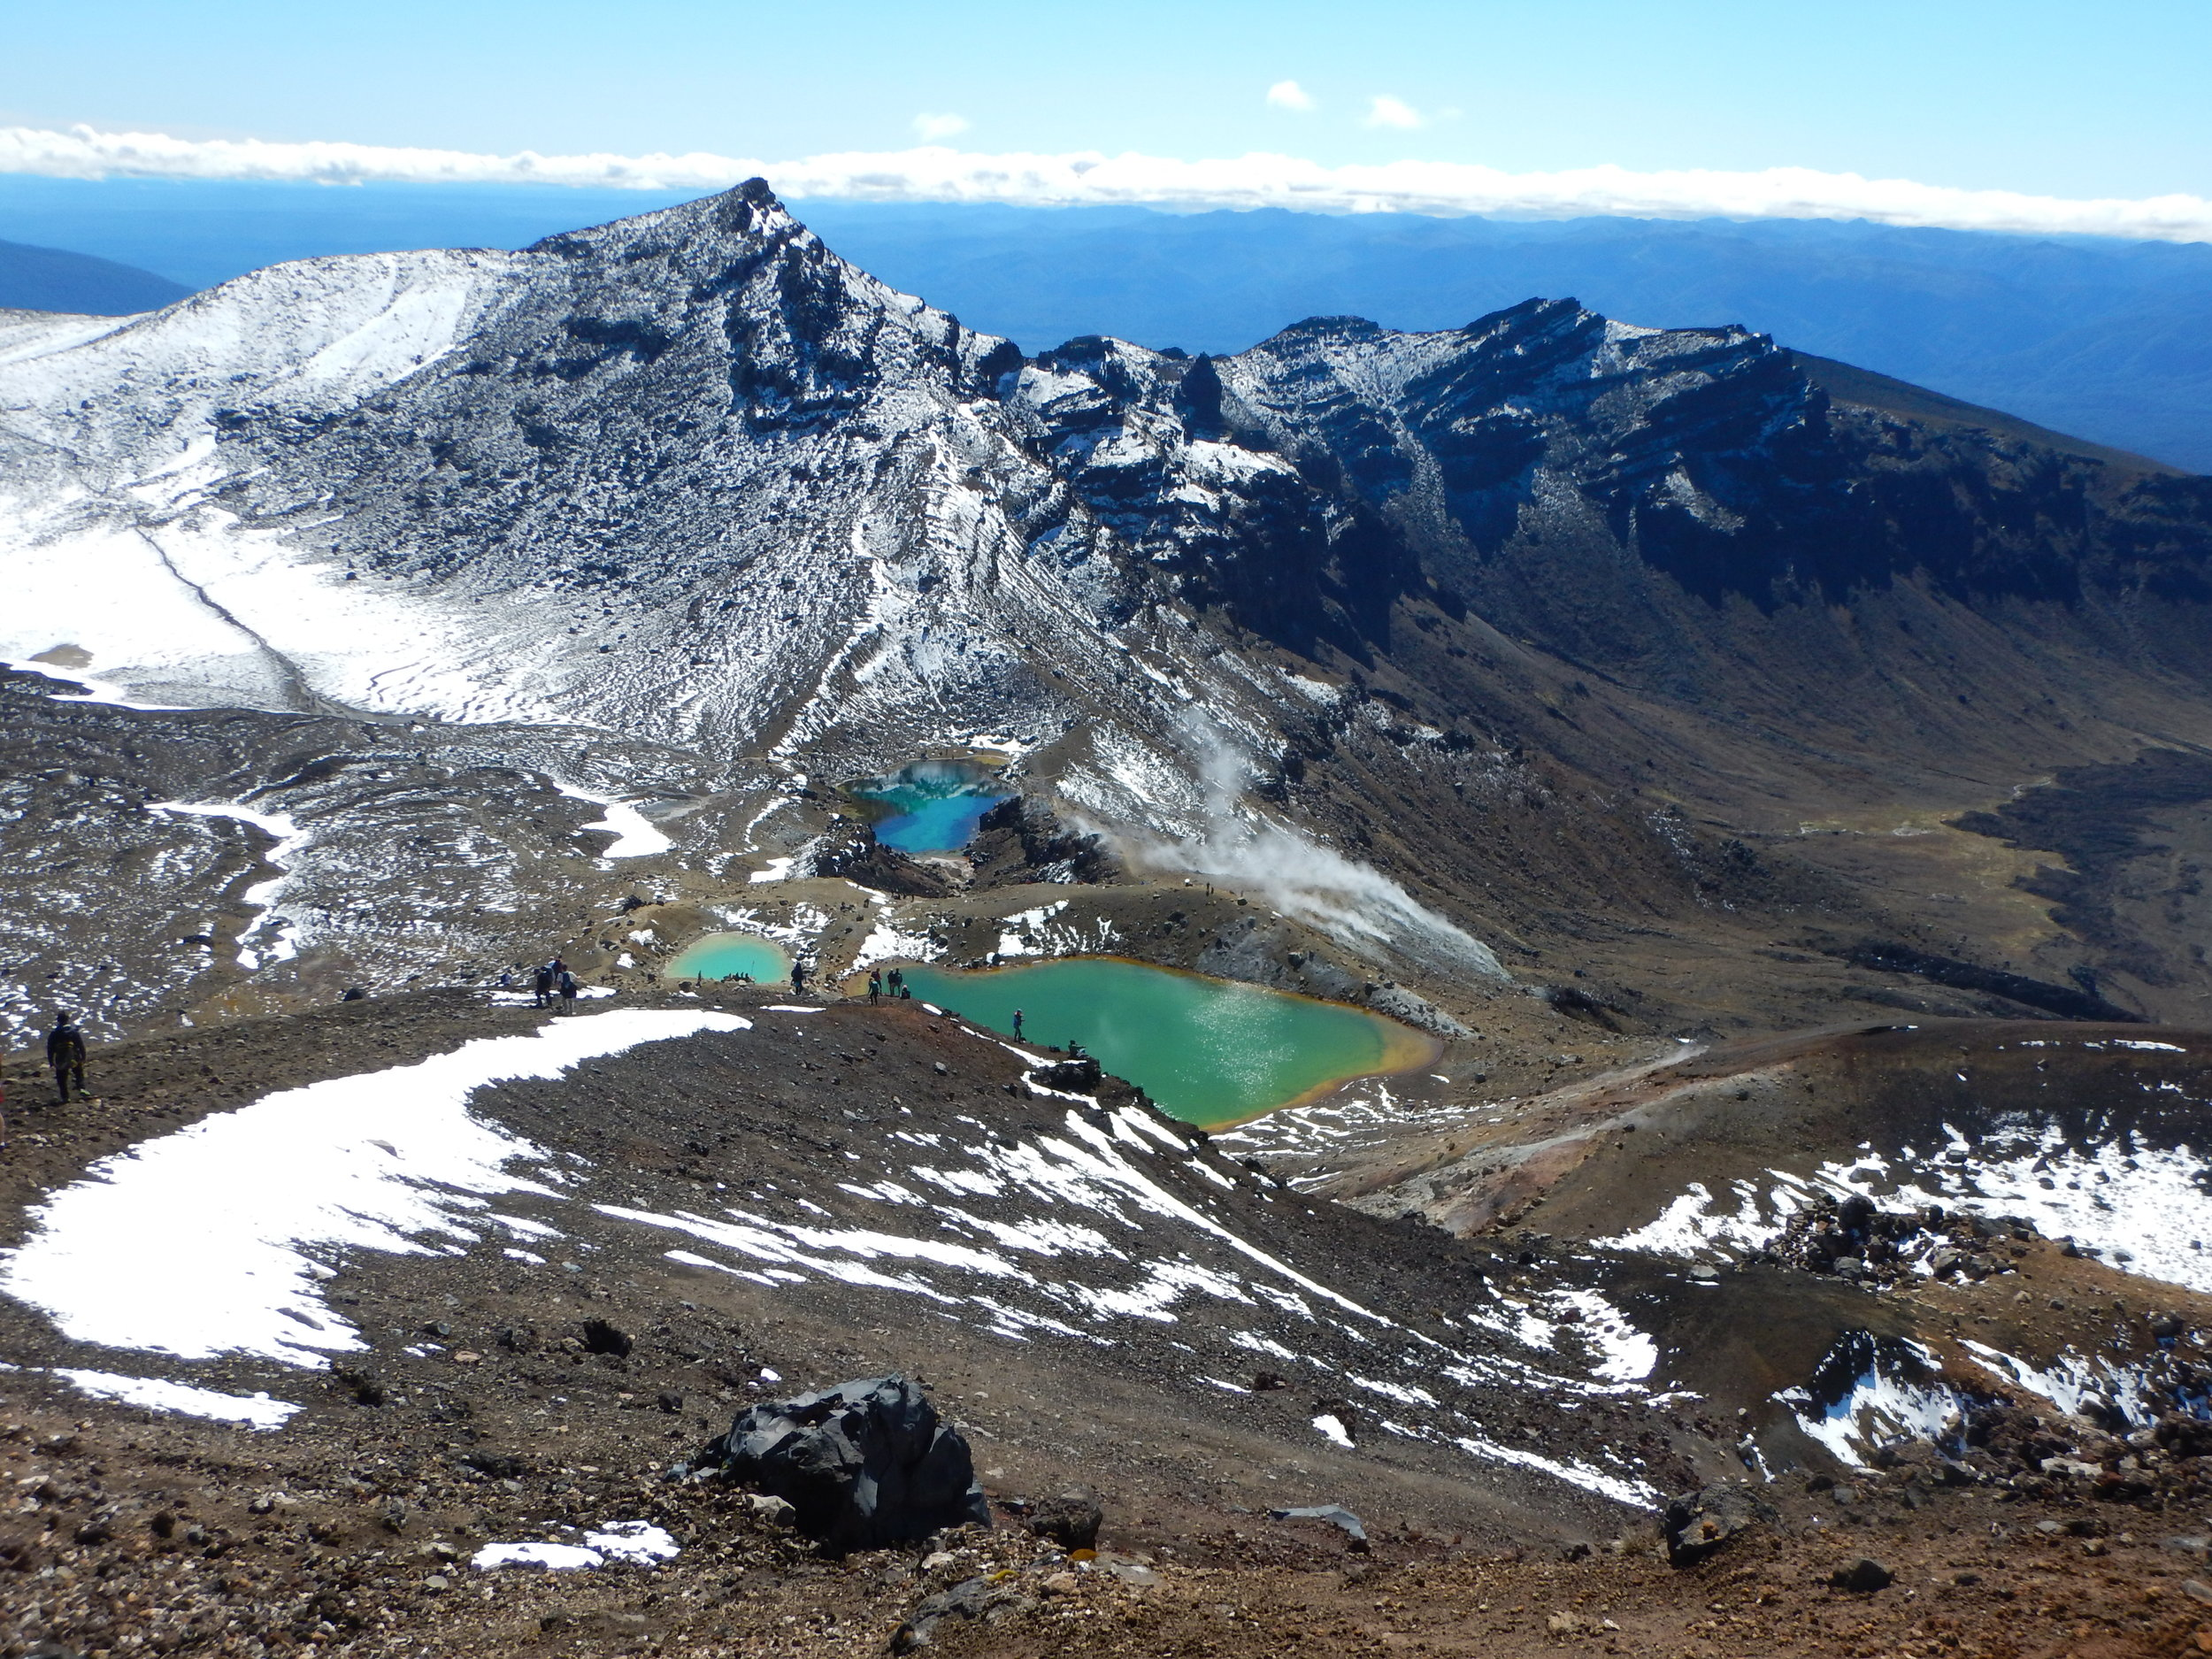 Looking down toward the Emerald Lakes, about the navigate the loose scree field descent!